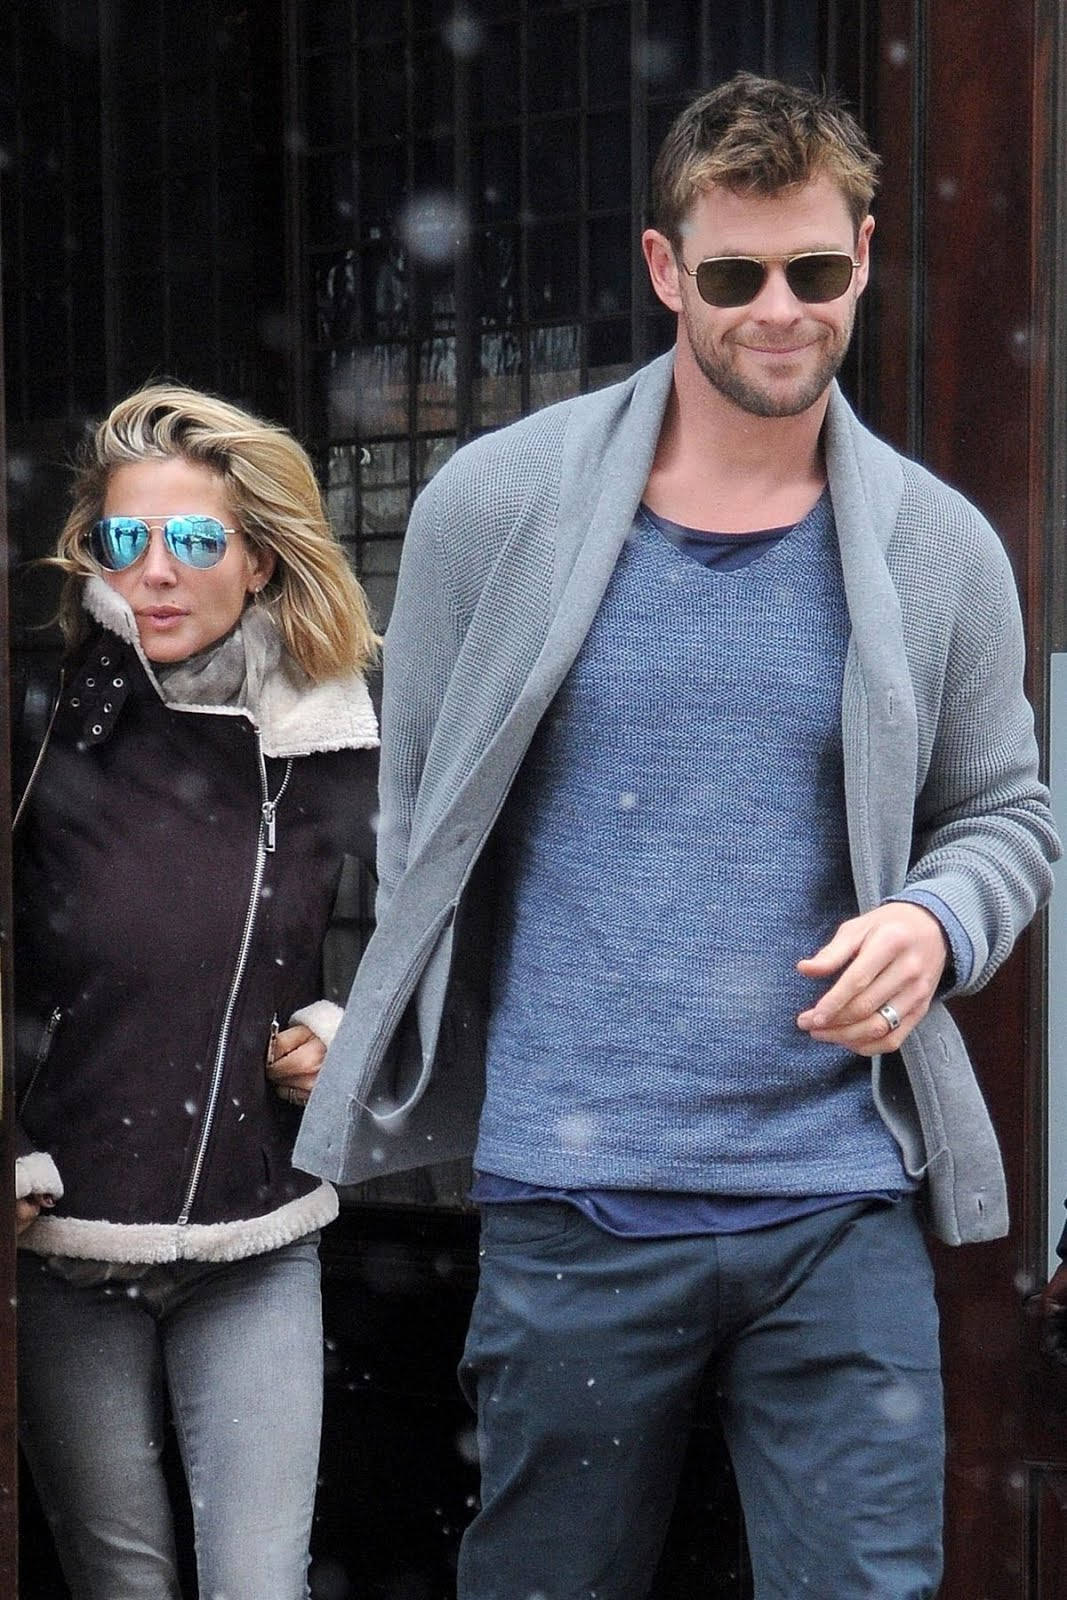 Elsa Pataky out with Chris Hemsworth in Snowfall in New York